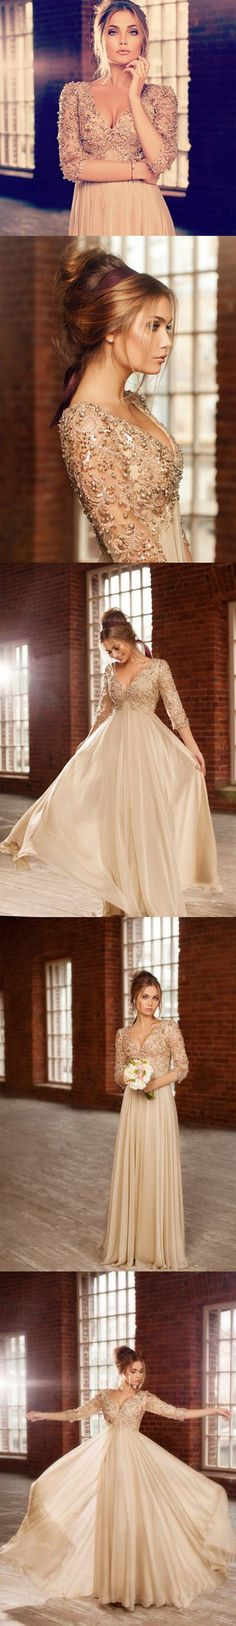 Beautiful Long Prom Dresses 2014 New Arrival Deep V-neck 3/4 Sleeves Beaded A-line Chiffon Evening Dresses